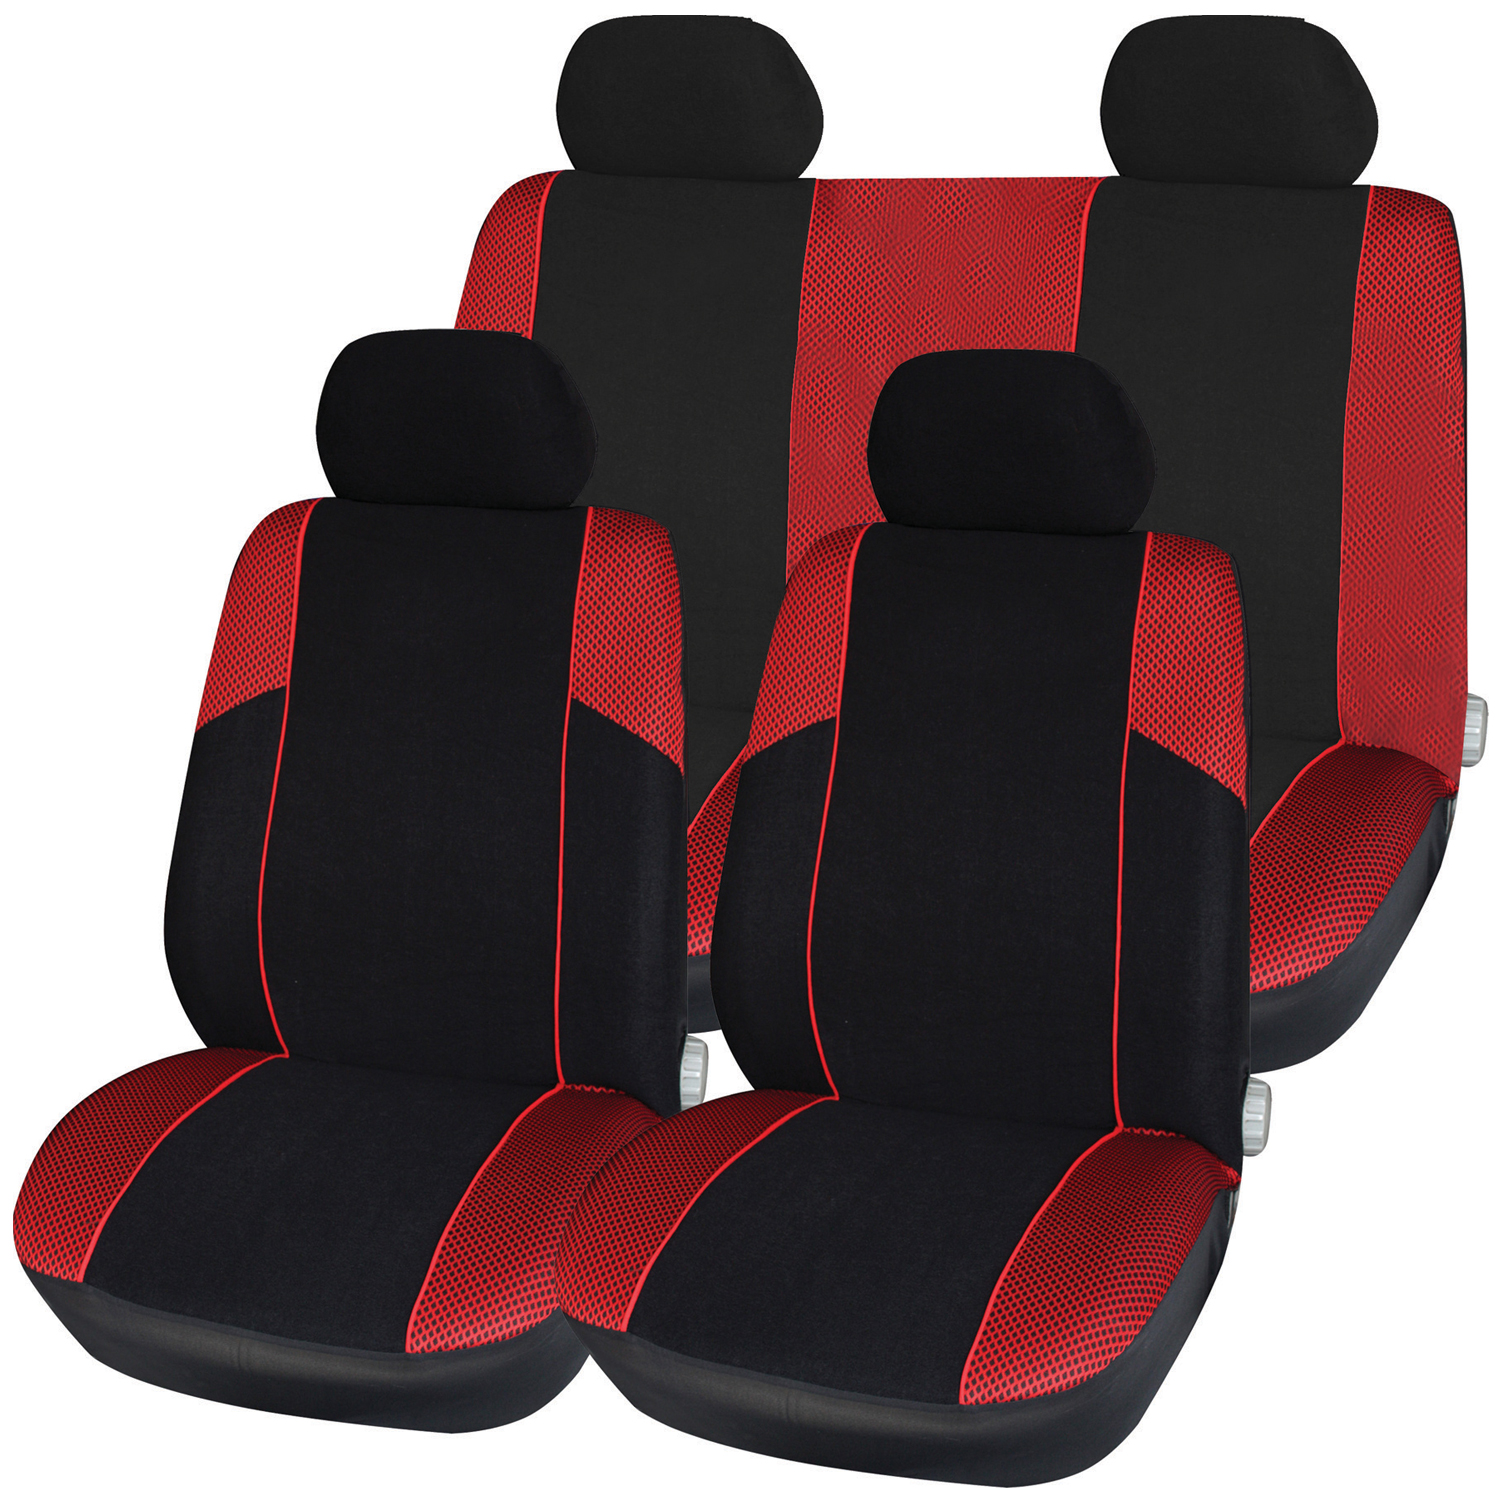 new mesh full car seat cover set black red universal fit protective ebay. Black Bedroom Furniture Sets. Home Design Ideas